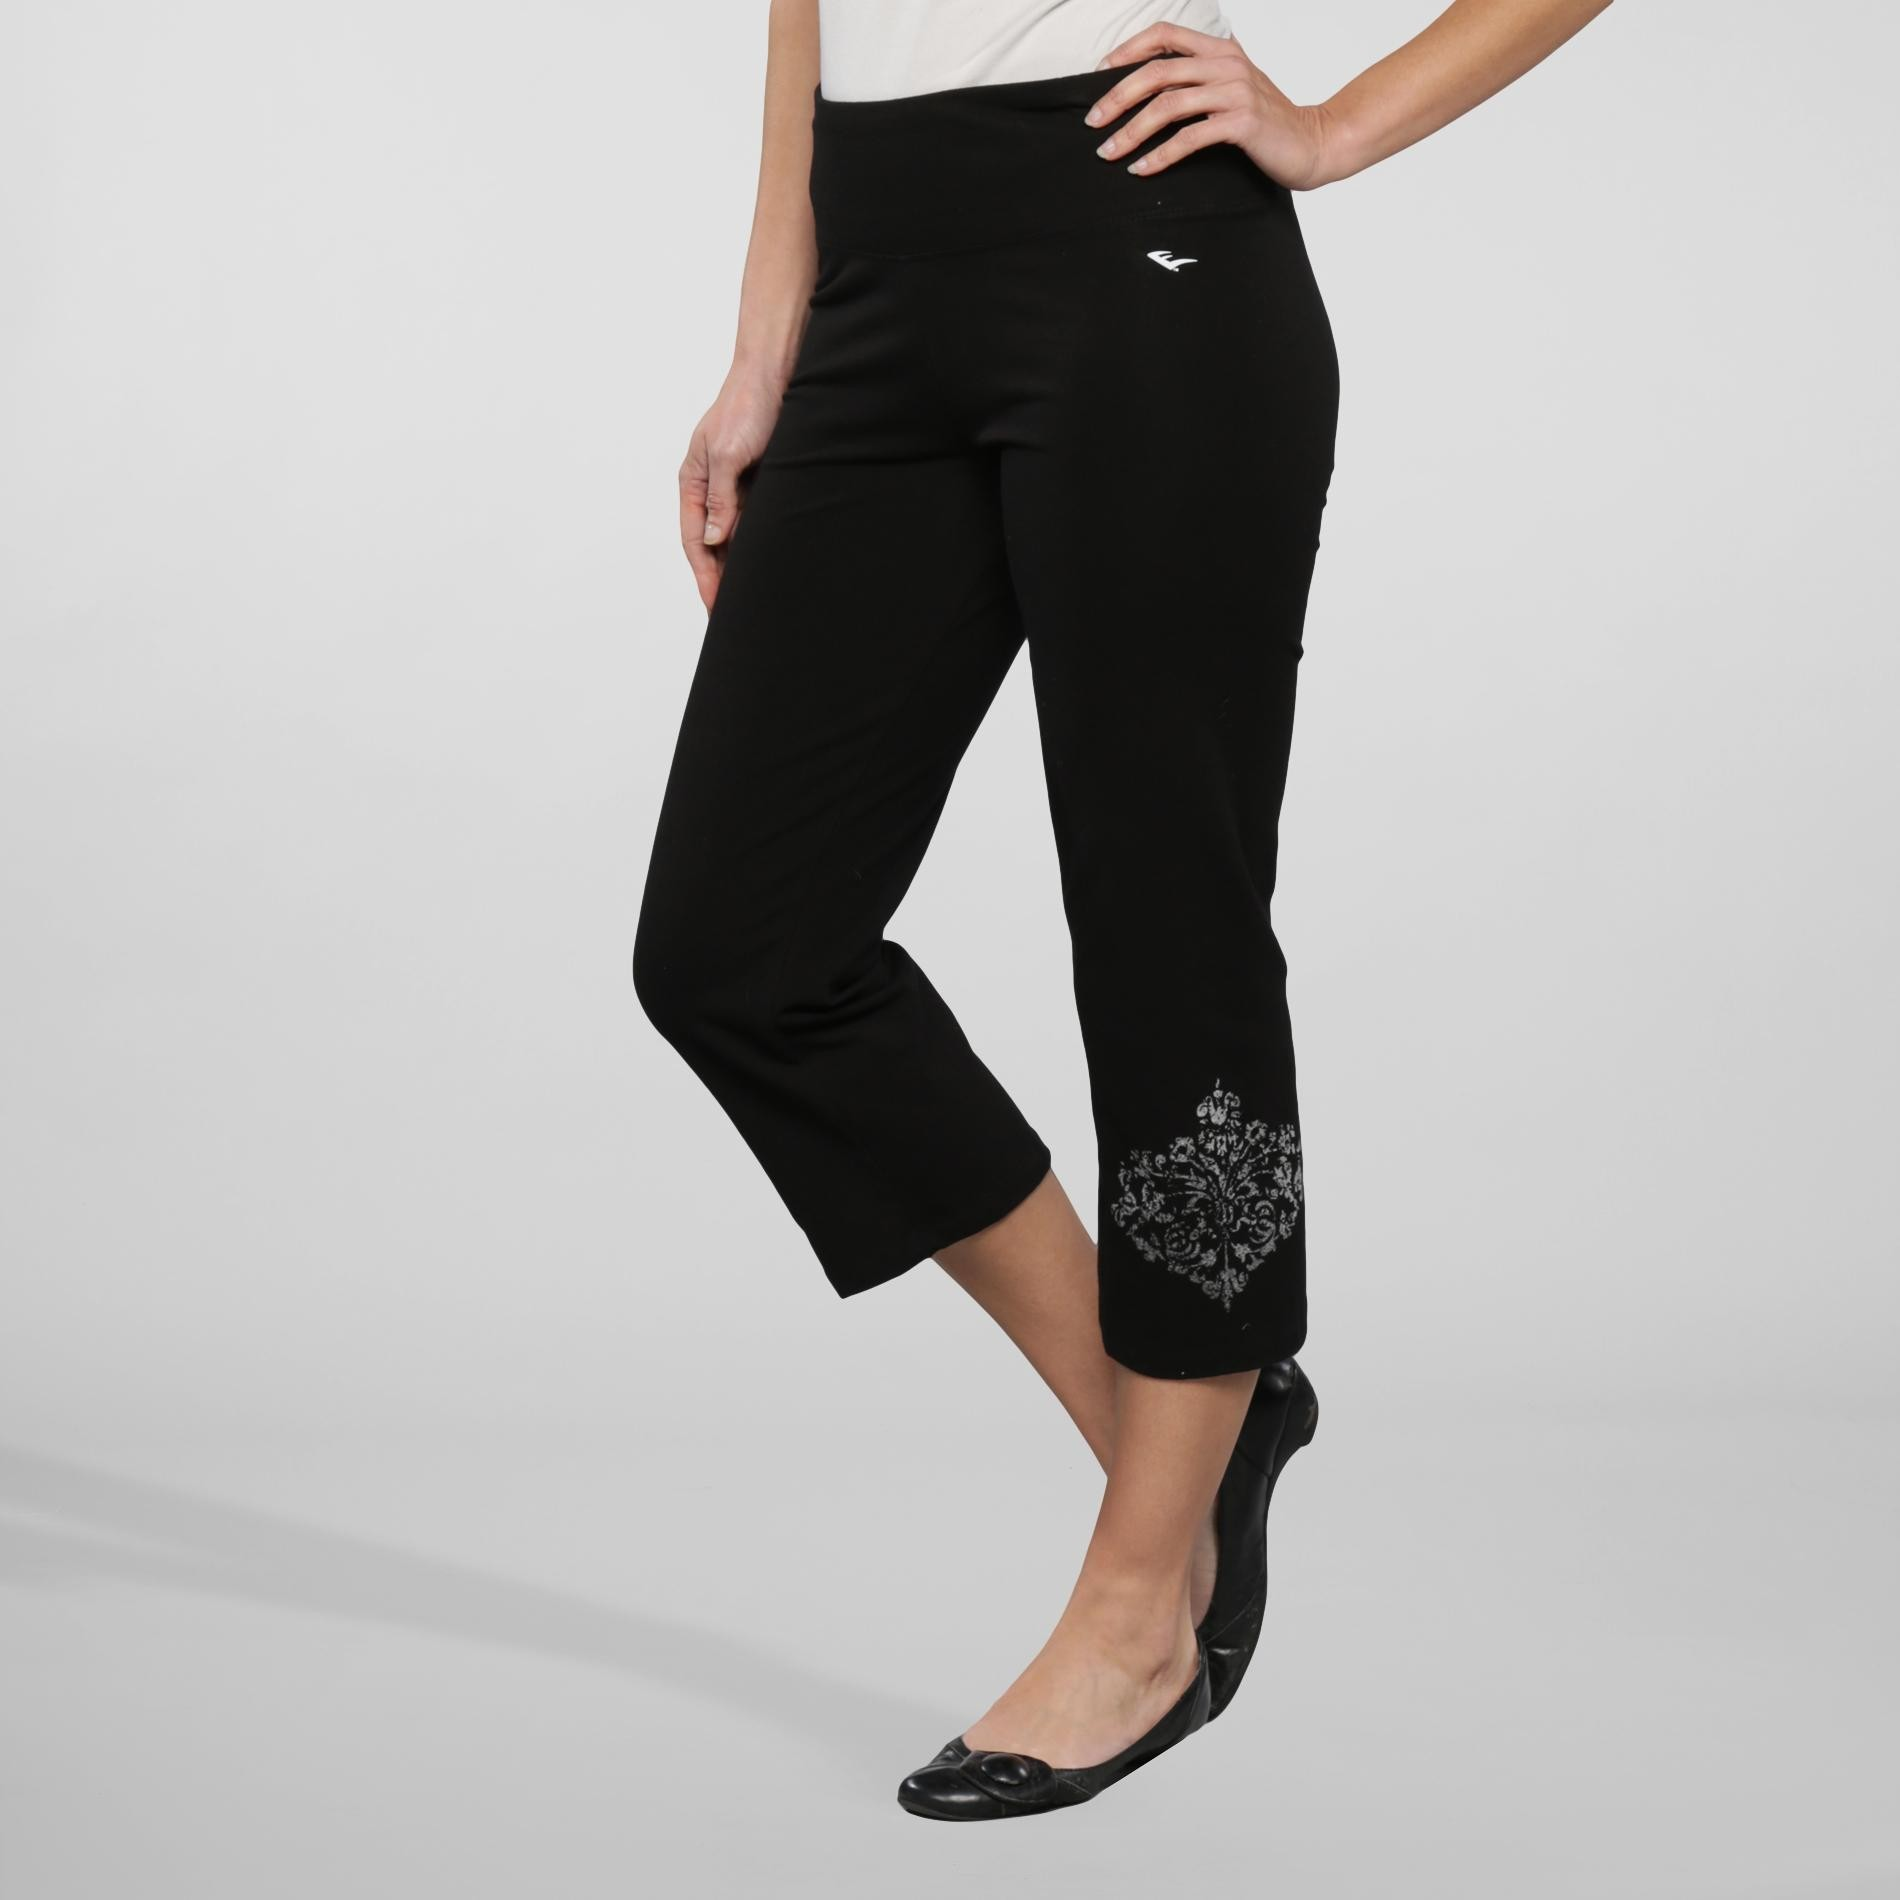 Everlast® Women's Slim-Fit Workout Pants - Heart at Sears.com